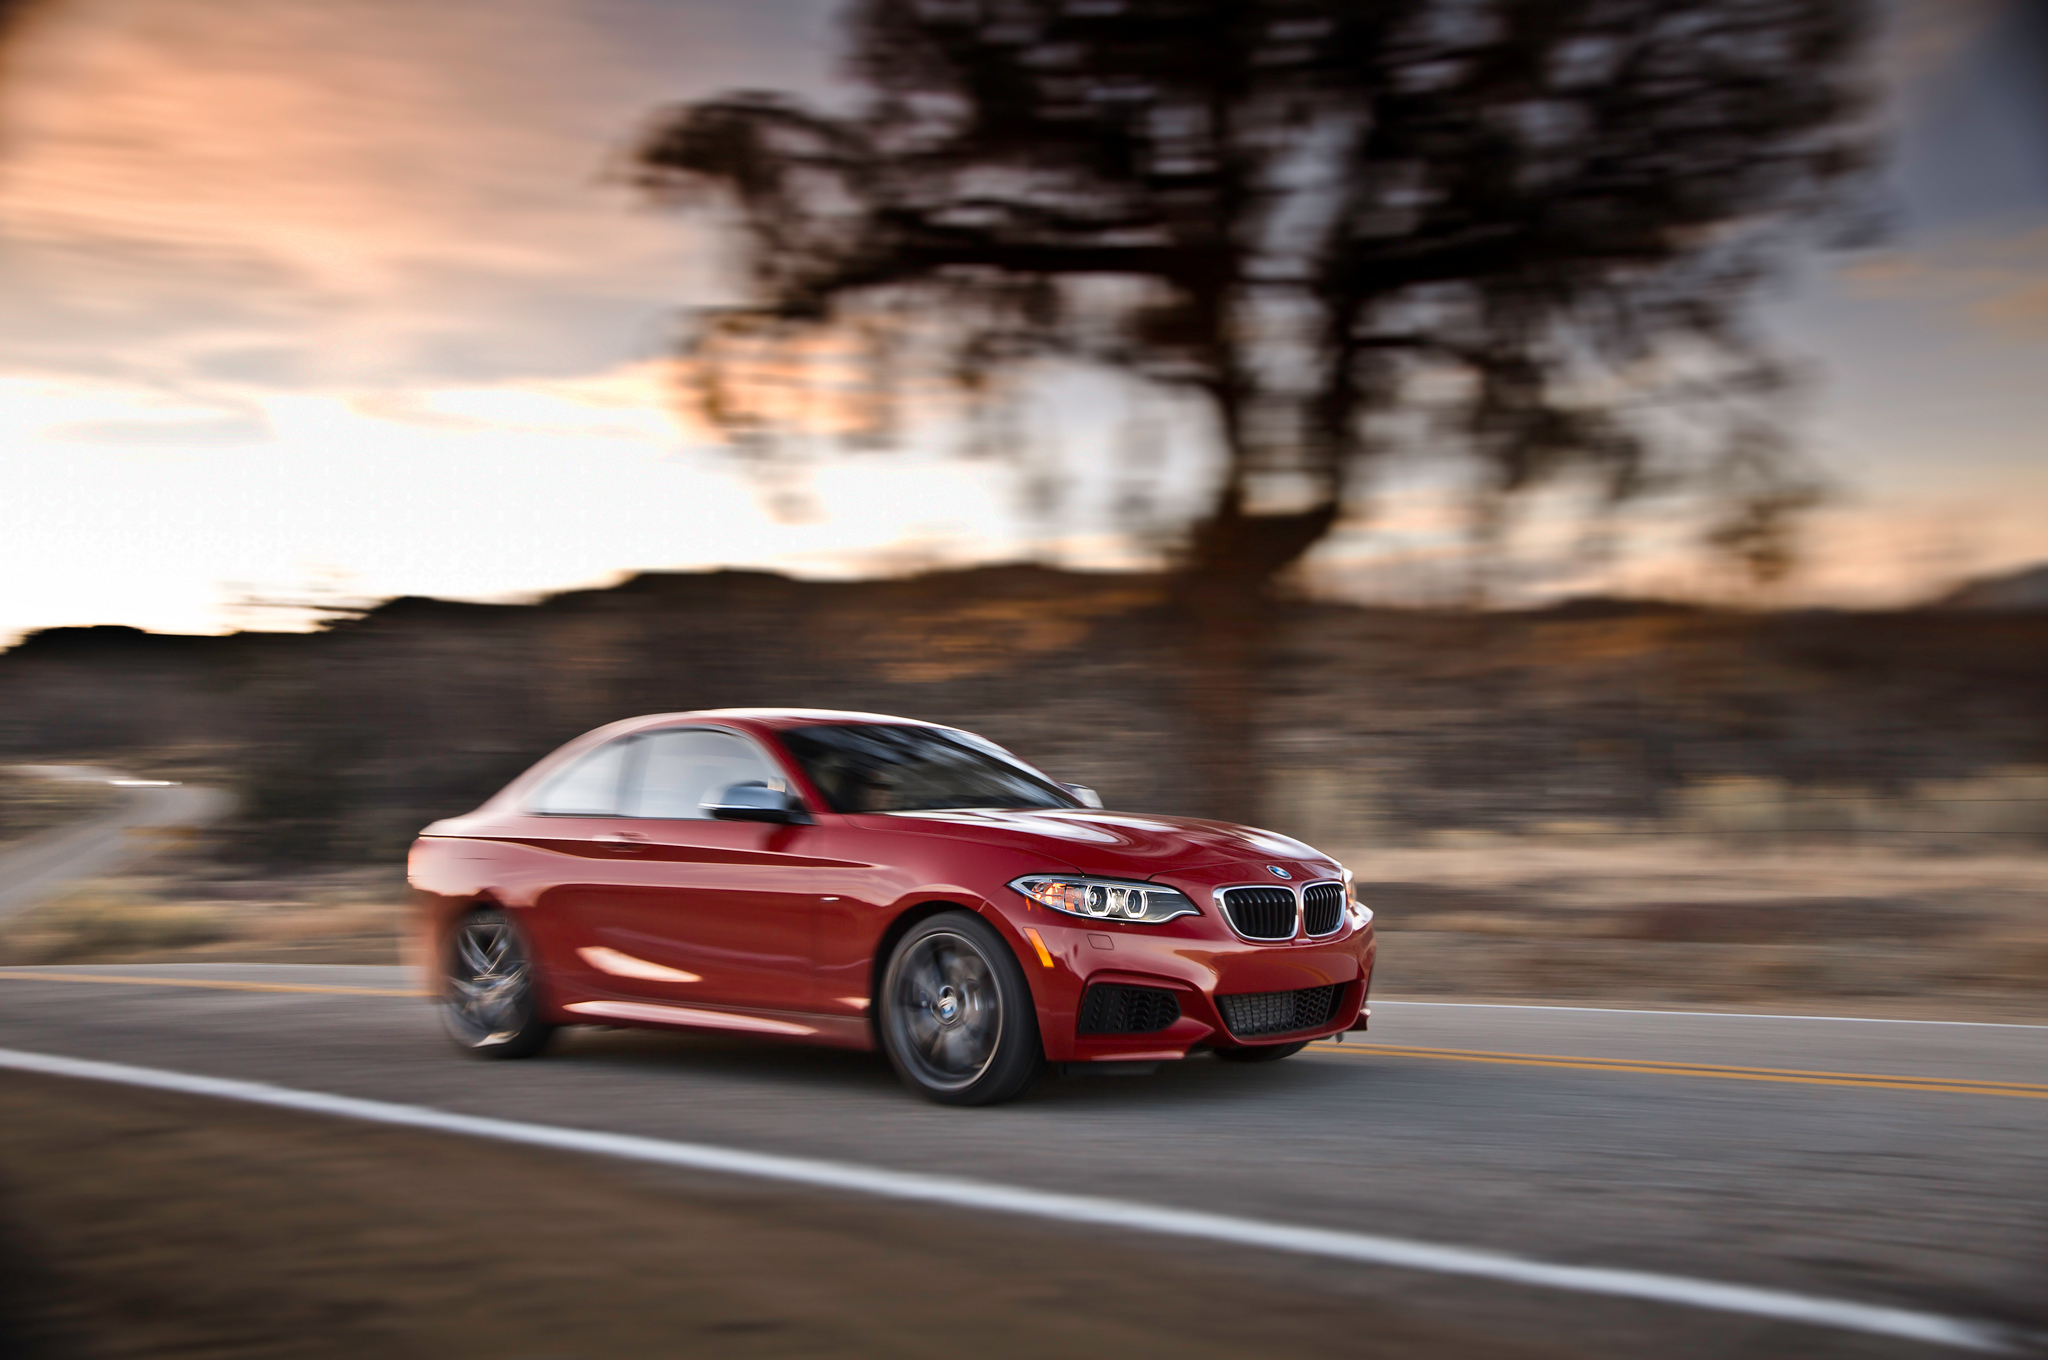 2014 Bmw M235i Red (Photo 8 of 8)